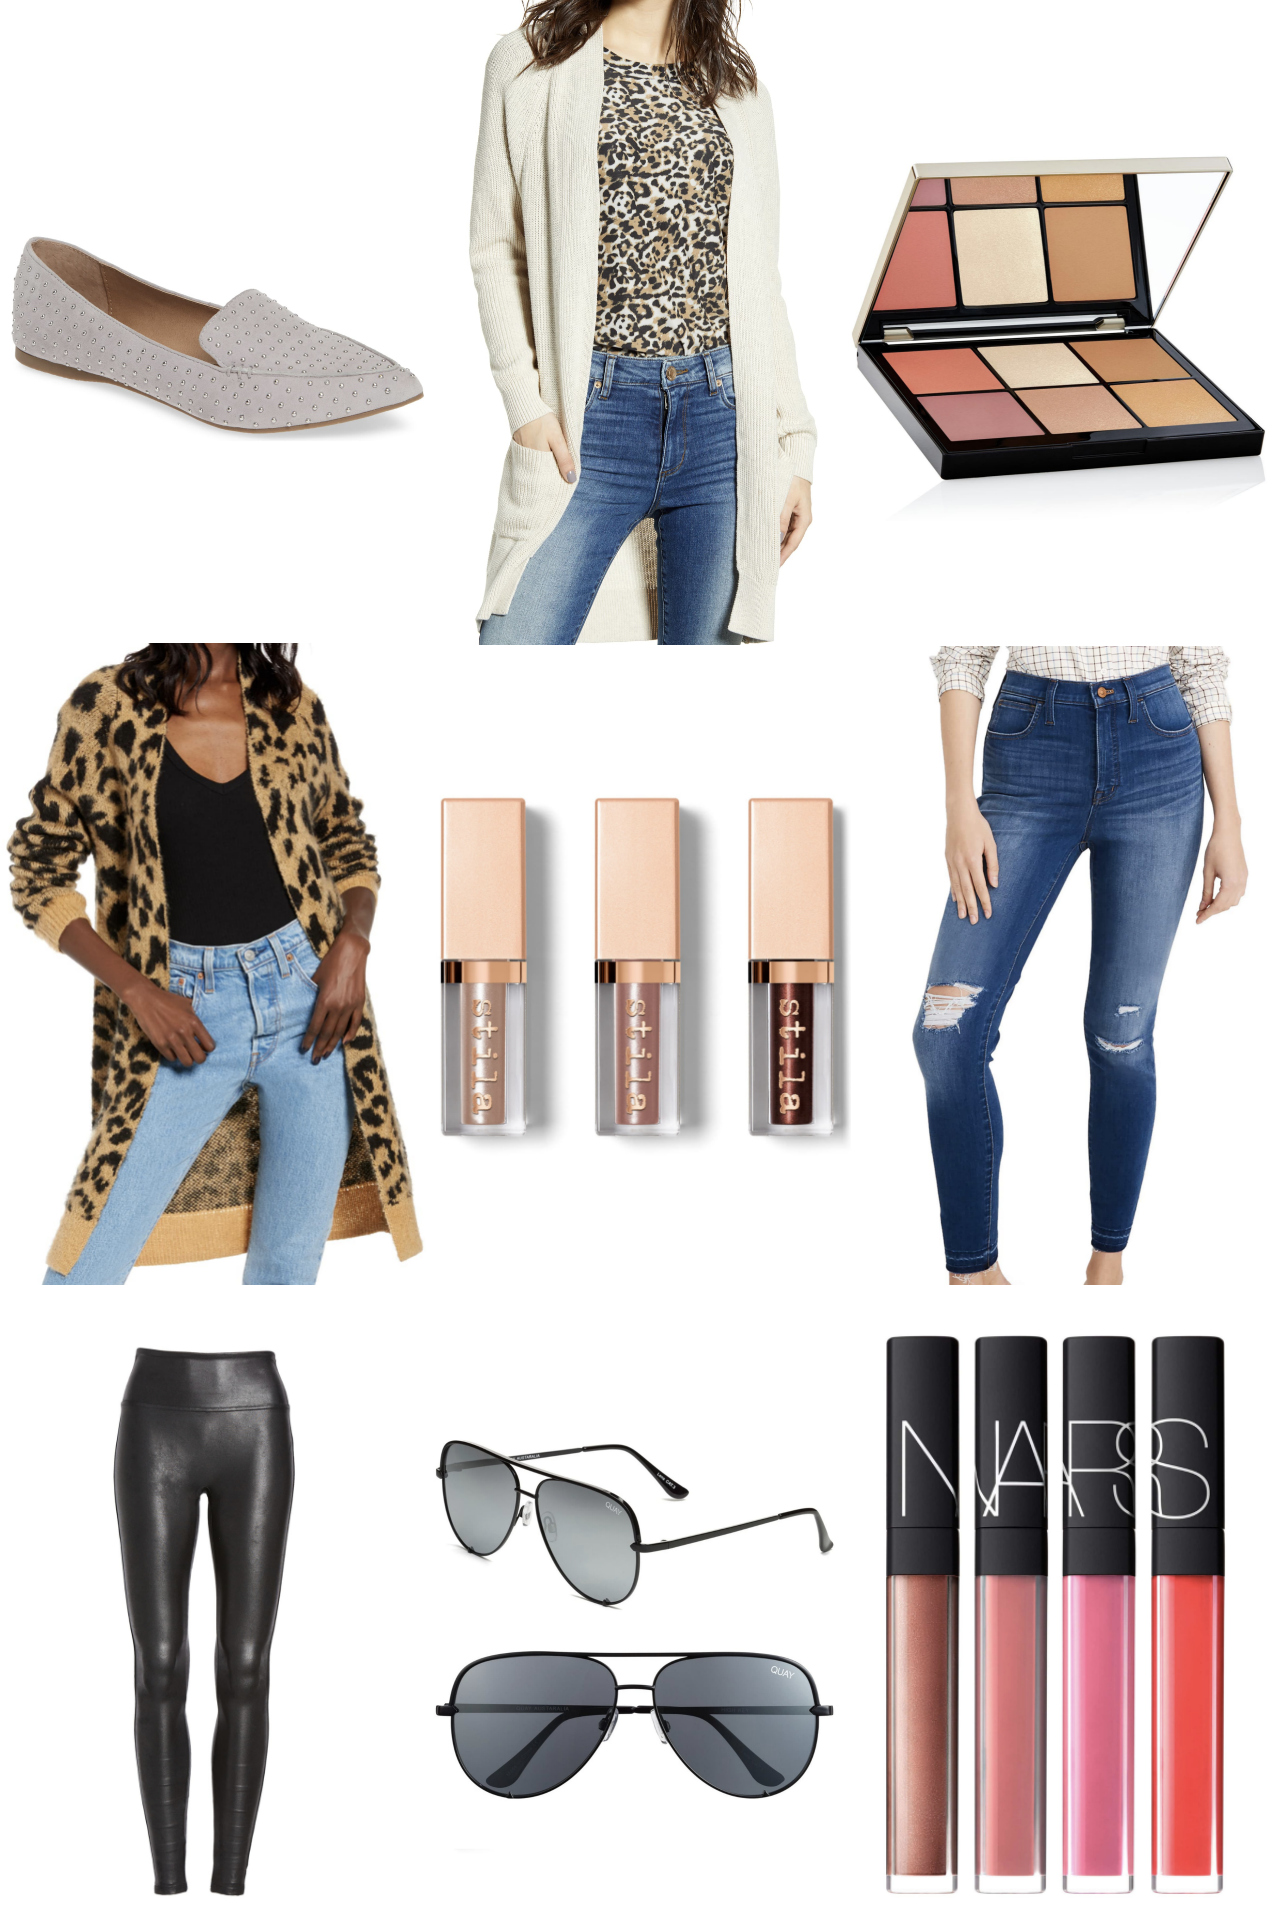 Mash Elle fashion style blogger | beauty blogger | Nordstrom sale | Nordstrom fashion | summer Style | leopard print jacket | Nars lipstick | eyeshadow